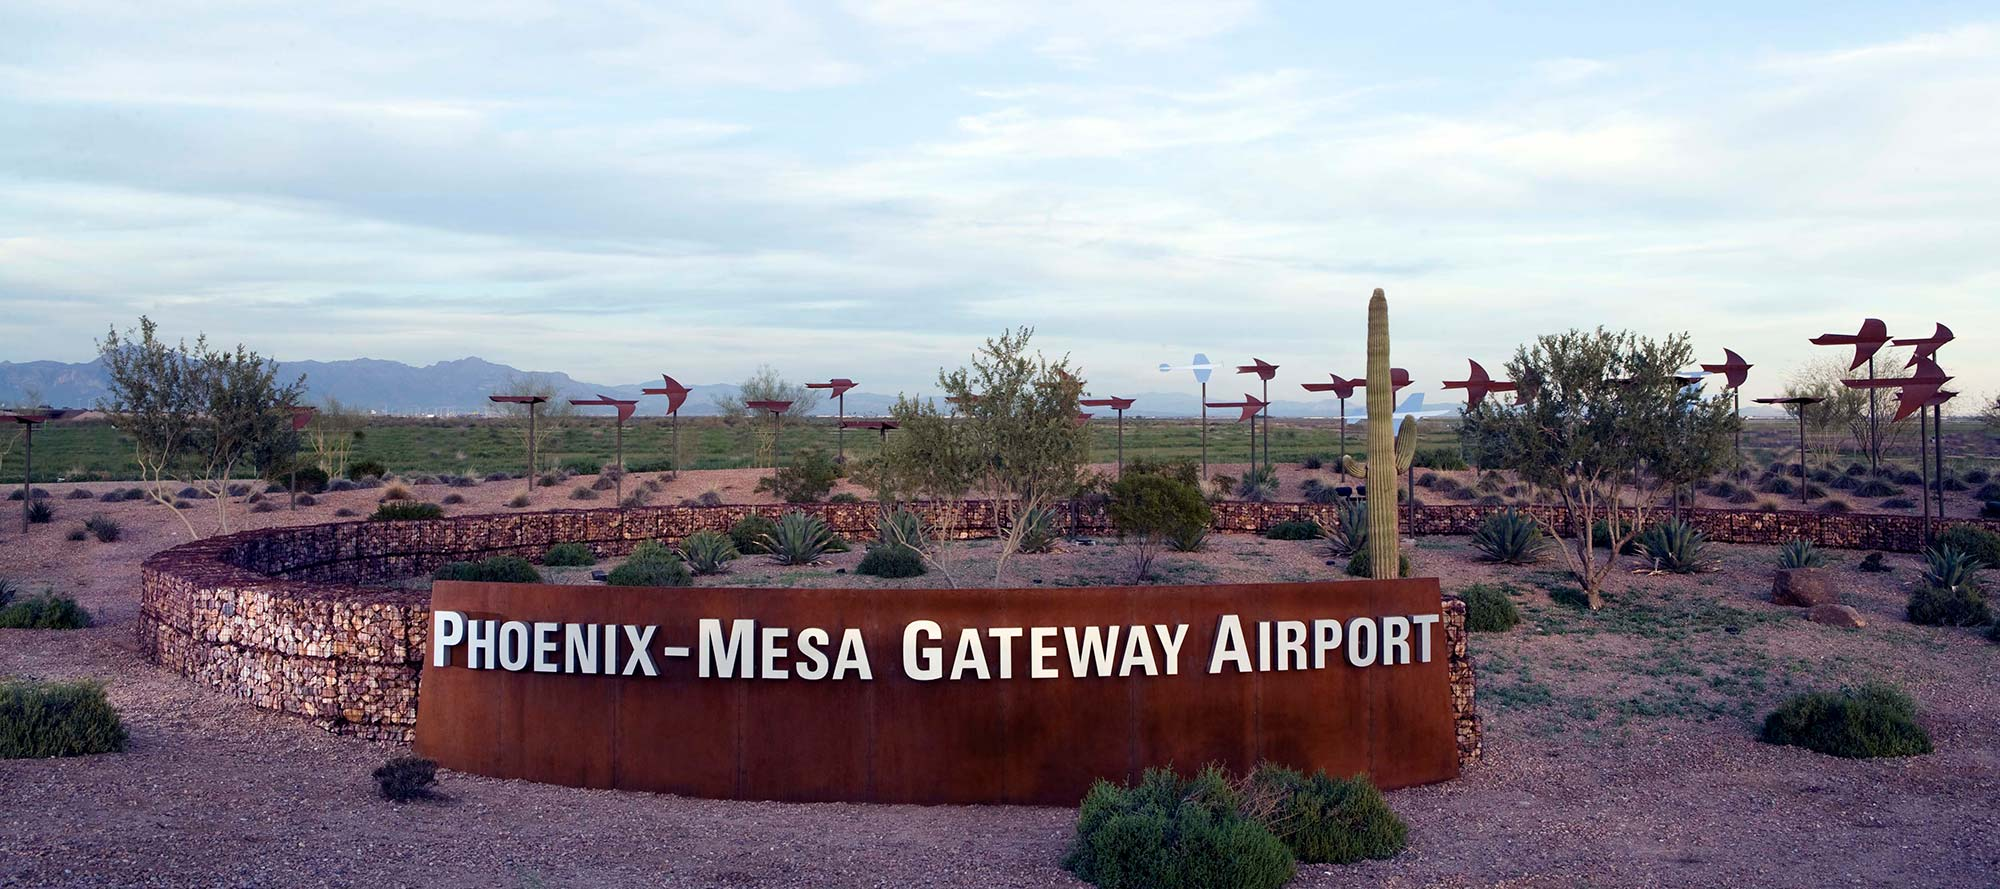 PhoenixMesa Gateway Airport Breaks Records